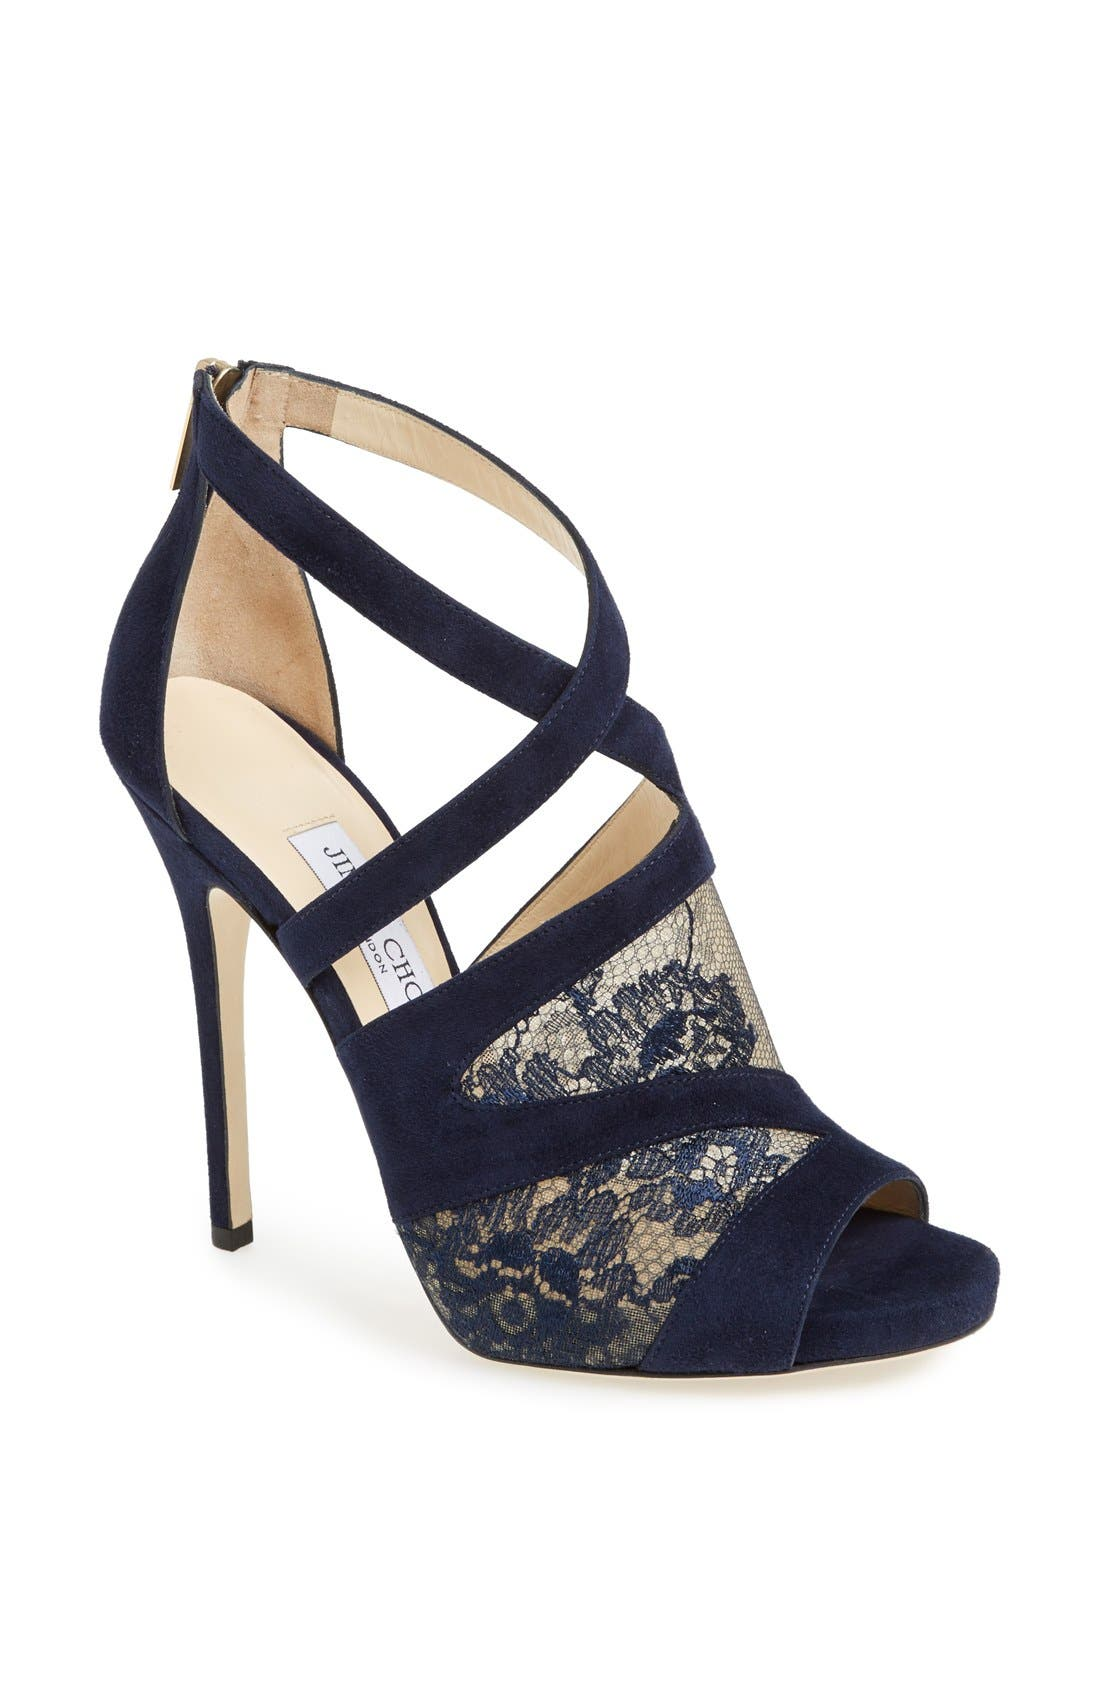 Alternate Image 1 Selected - Jimmy Choo 'Vantage' Suede & Lace Sandal